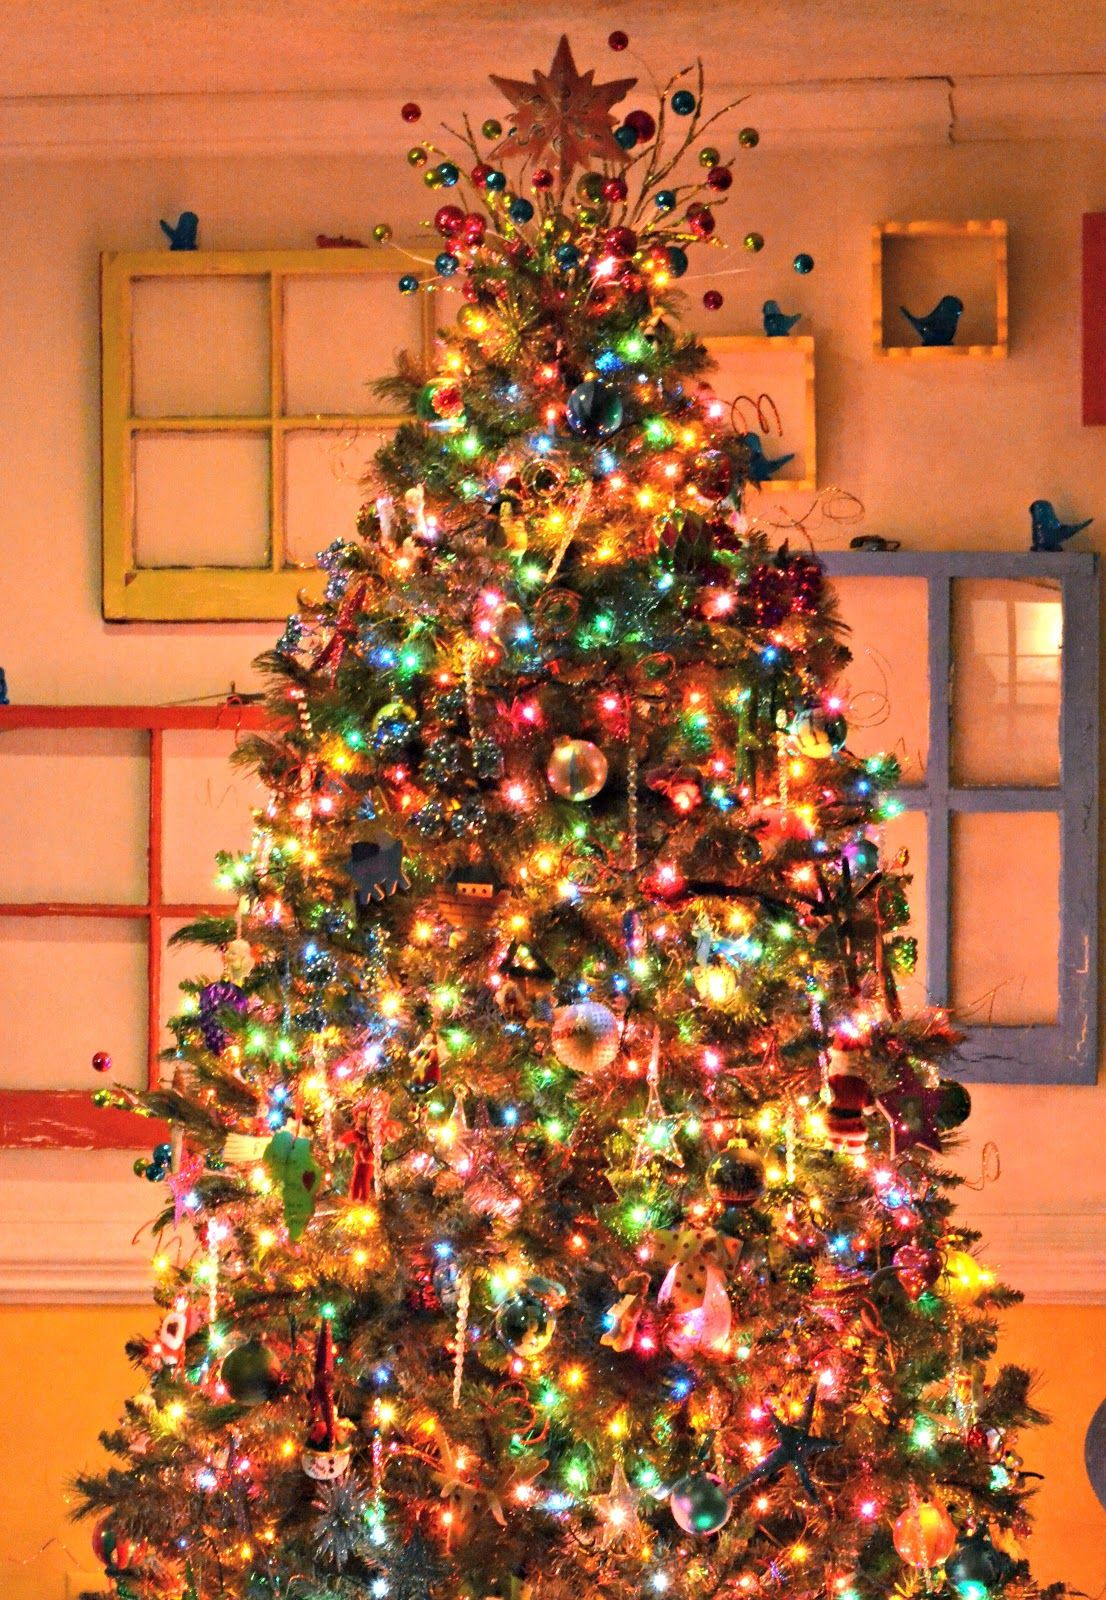 Trendy Tree Christmas Decor Ideas Trendy Christmas Tree Decorati Christmas Tree With Coloured Lights Pretty Christmas Trees Christmas Tree Colored Lights